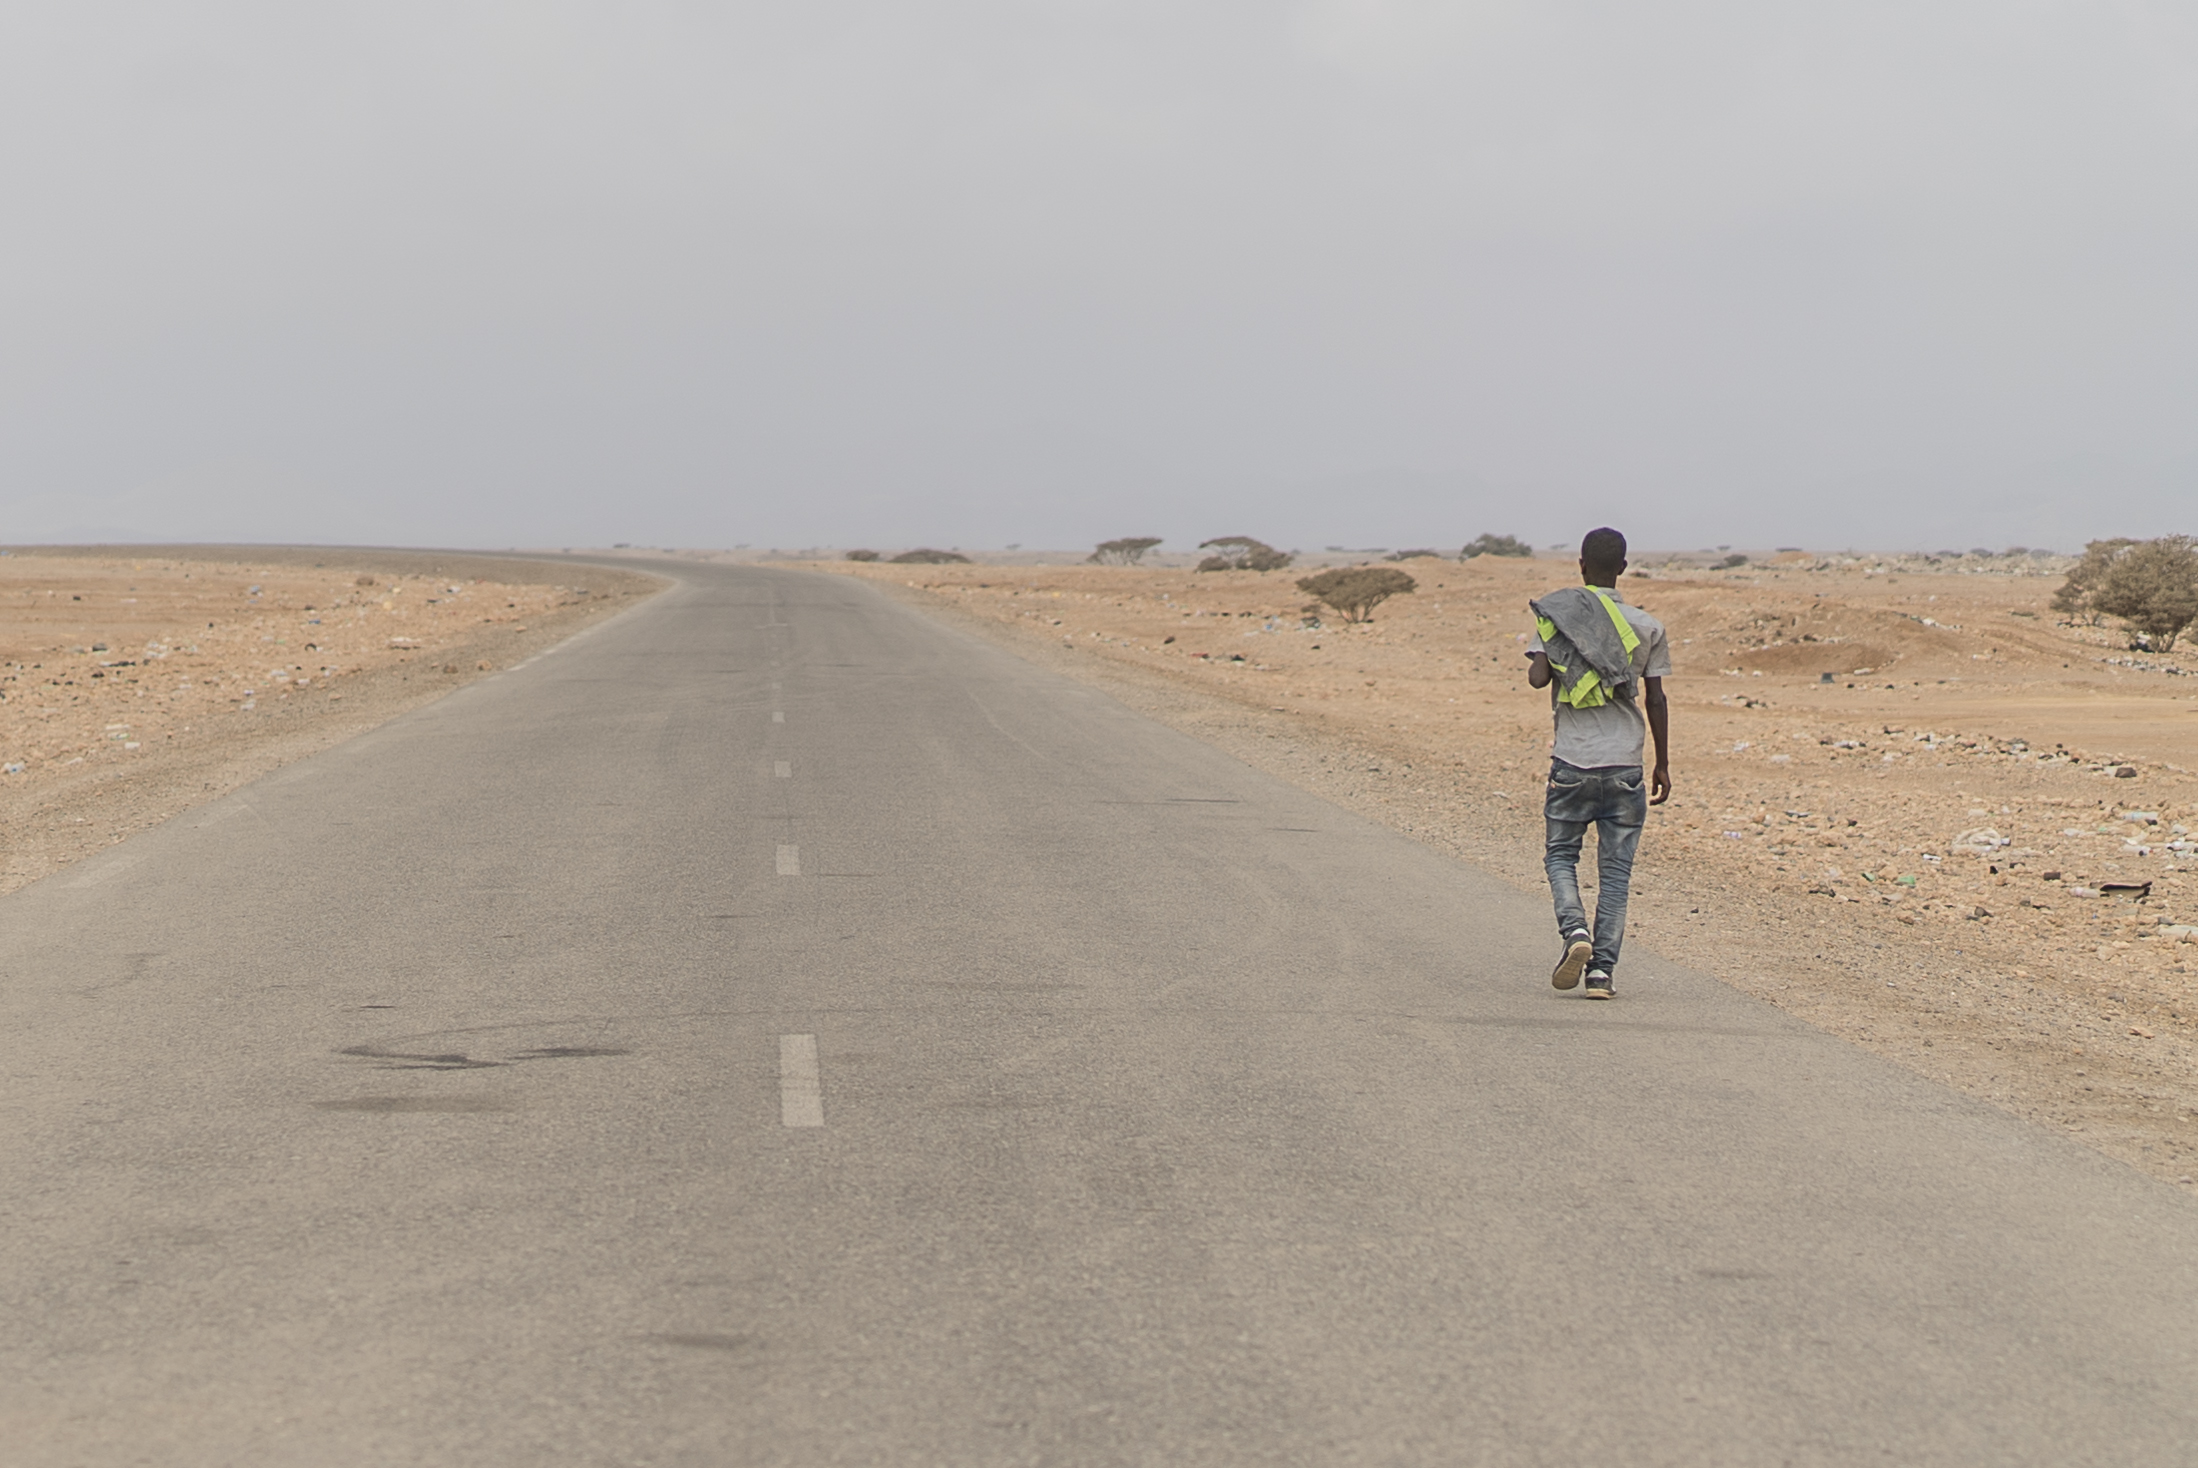 A man walks away from camera down an outstretched road in a desert scene